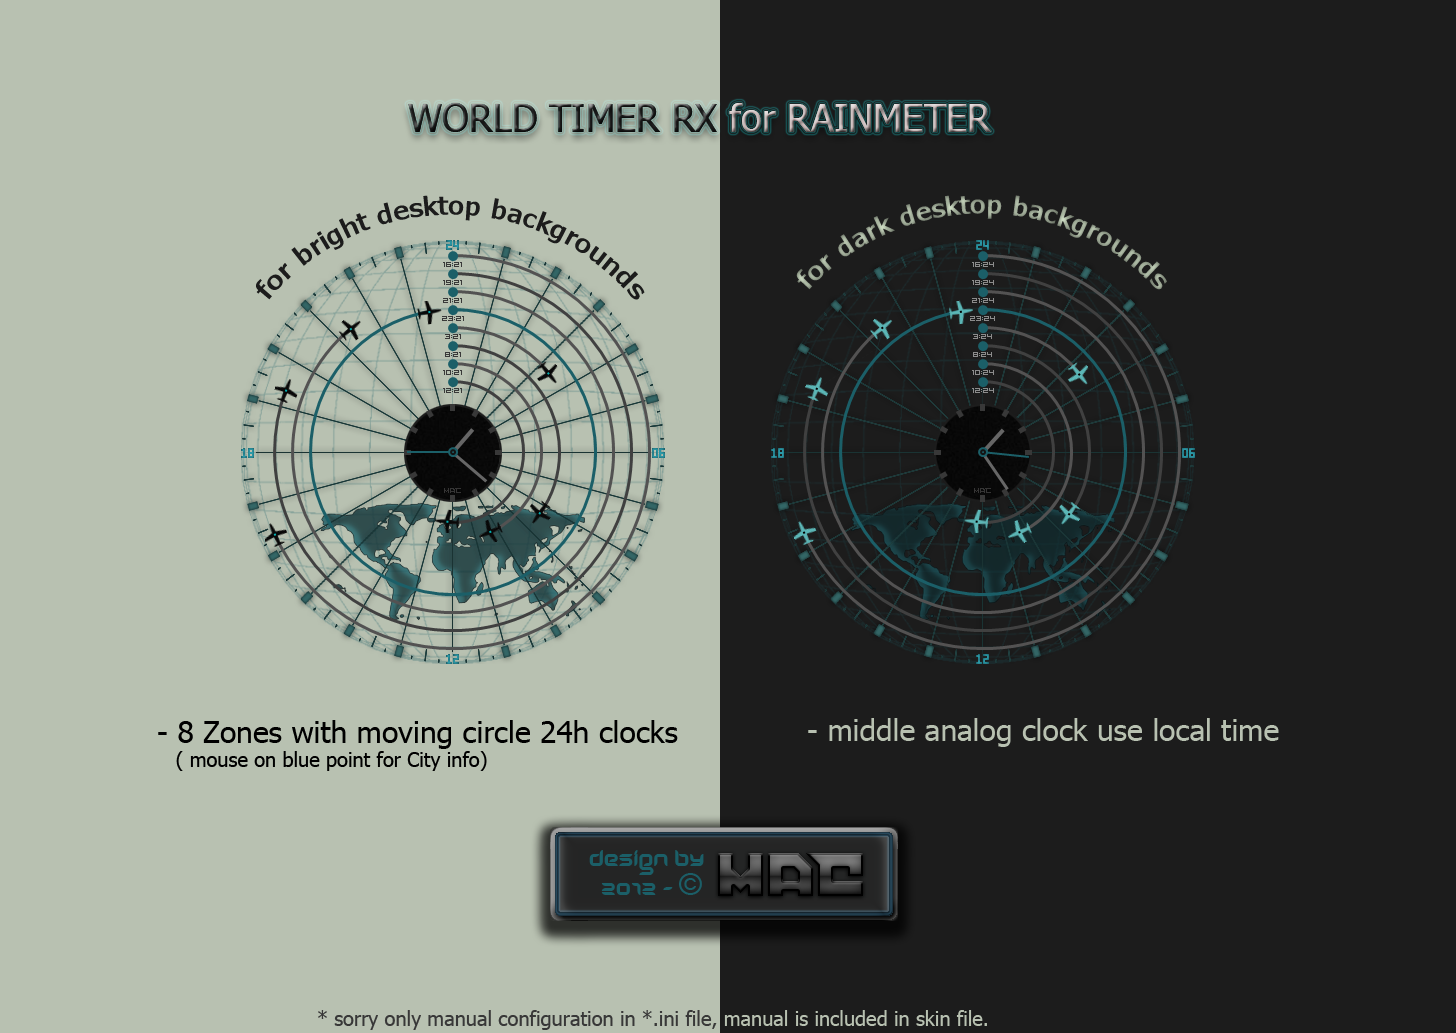 World Timer RX Radar (Rainmeter) by d4fmac